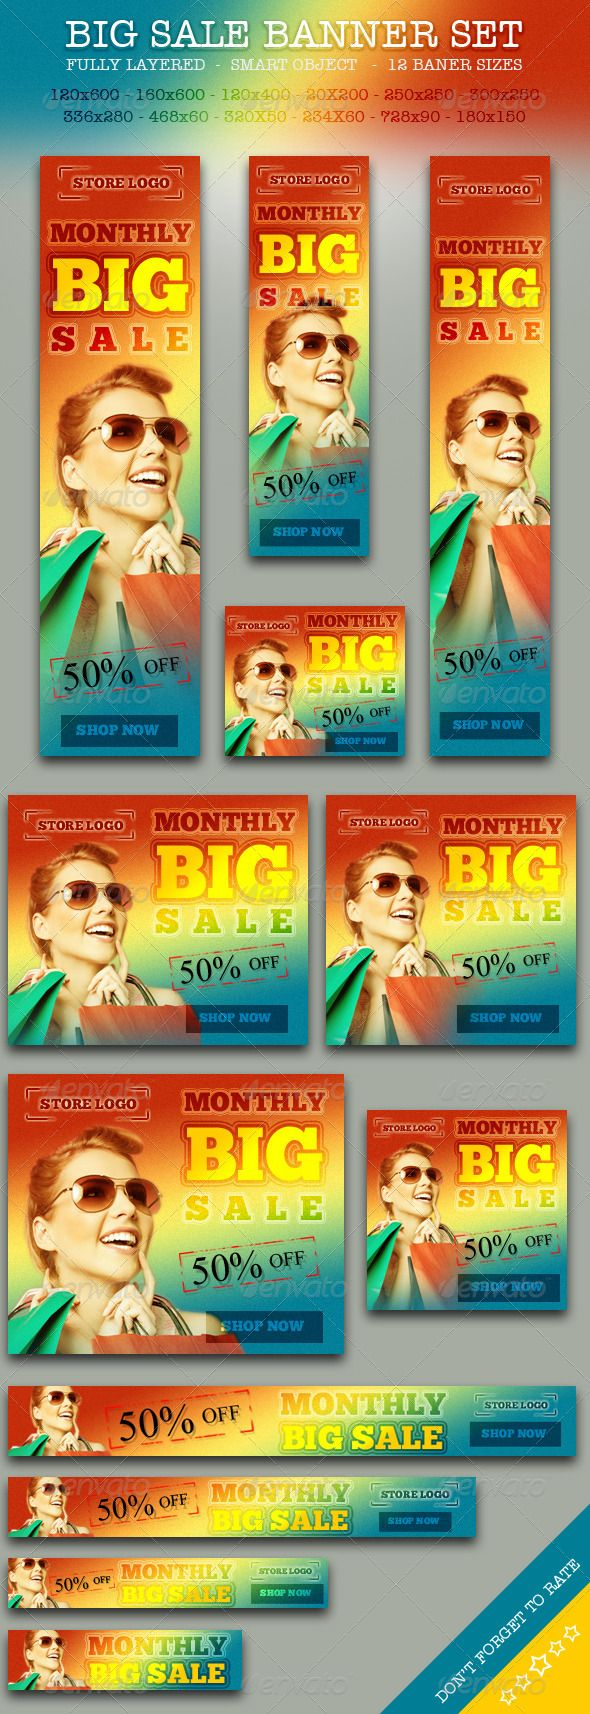 BIG Sale Promotion Online Store Banner ad Set #GraphicRiver BIG Sale Promotion Banner ad Set for Online Store. Support for Google Adword Desktop. Total 12 PSD files in pack. Dont forget to give five stars if you like this item. Total 12 Web Banner ad Sizes: skyscraper 120×600 skyscraper 160X600 small skyscraper 120X400 half banner 234X60 full banner 468X60 leaderboard 728X90 mobile leaderboard 320X50 square 336X280 square 300X250 square 250X250 small square 200X200 ...